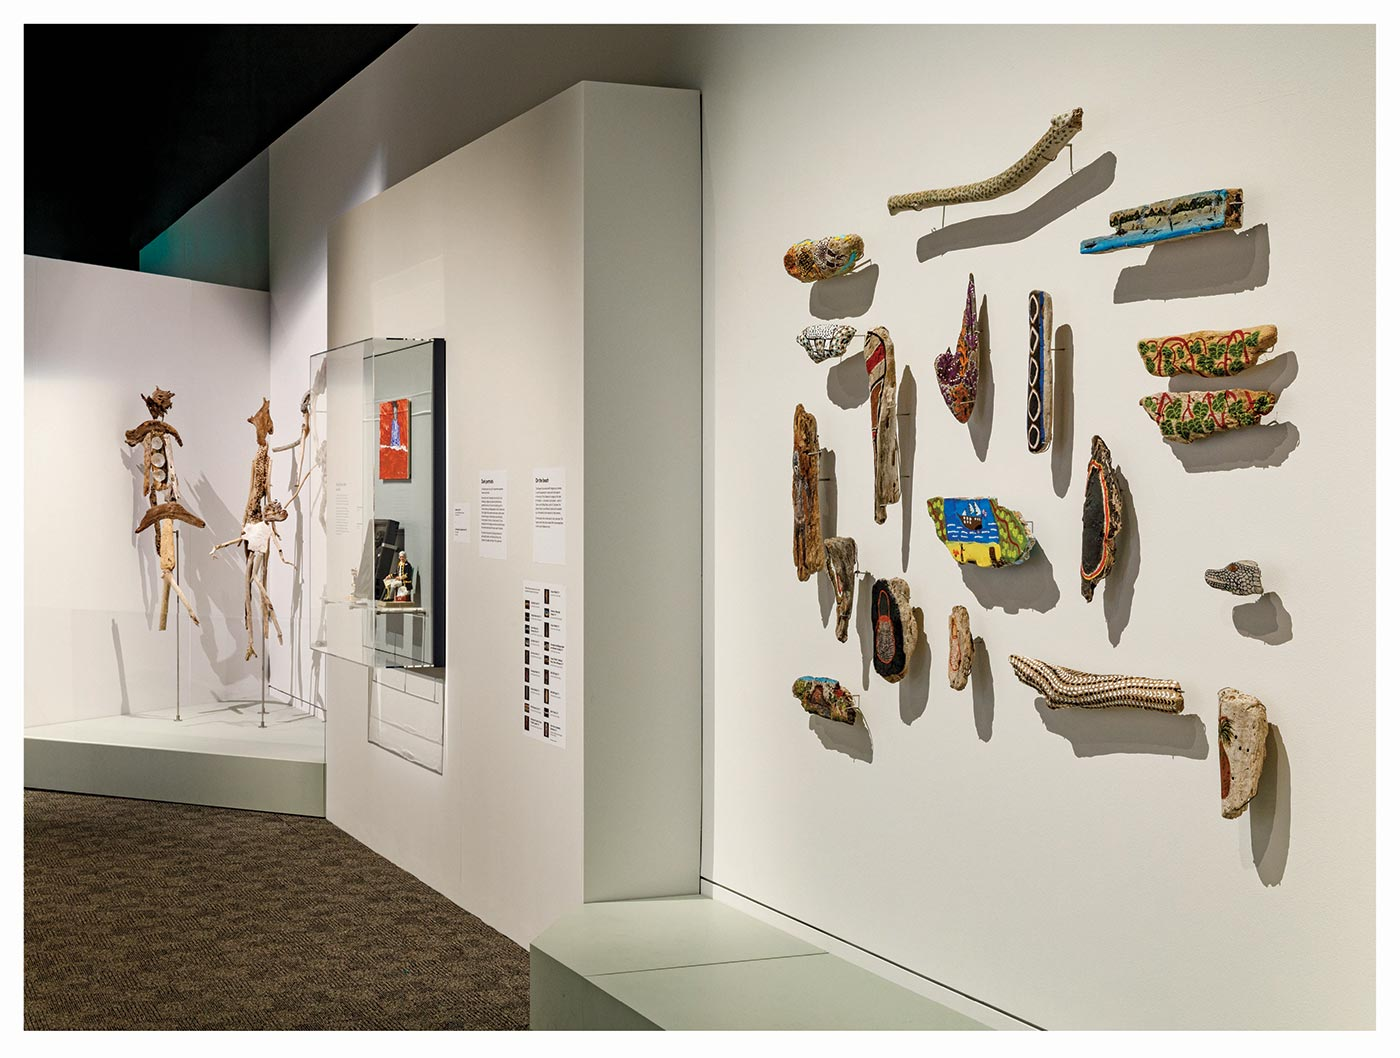 Sample page for the Endeavour Voyages: The Untold Stories of Cook and the First Australians catalogue. The page features images of an exhibition space with driftwood artwork mounted on the wall and on stands, and various other objects. - click to view larger image